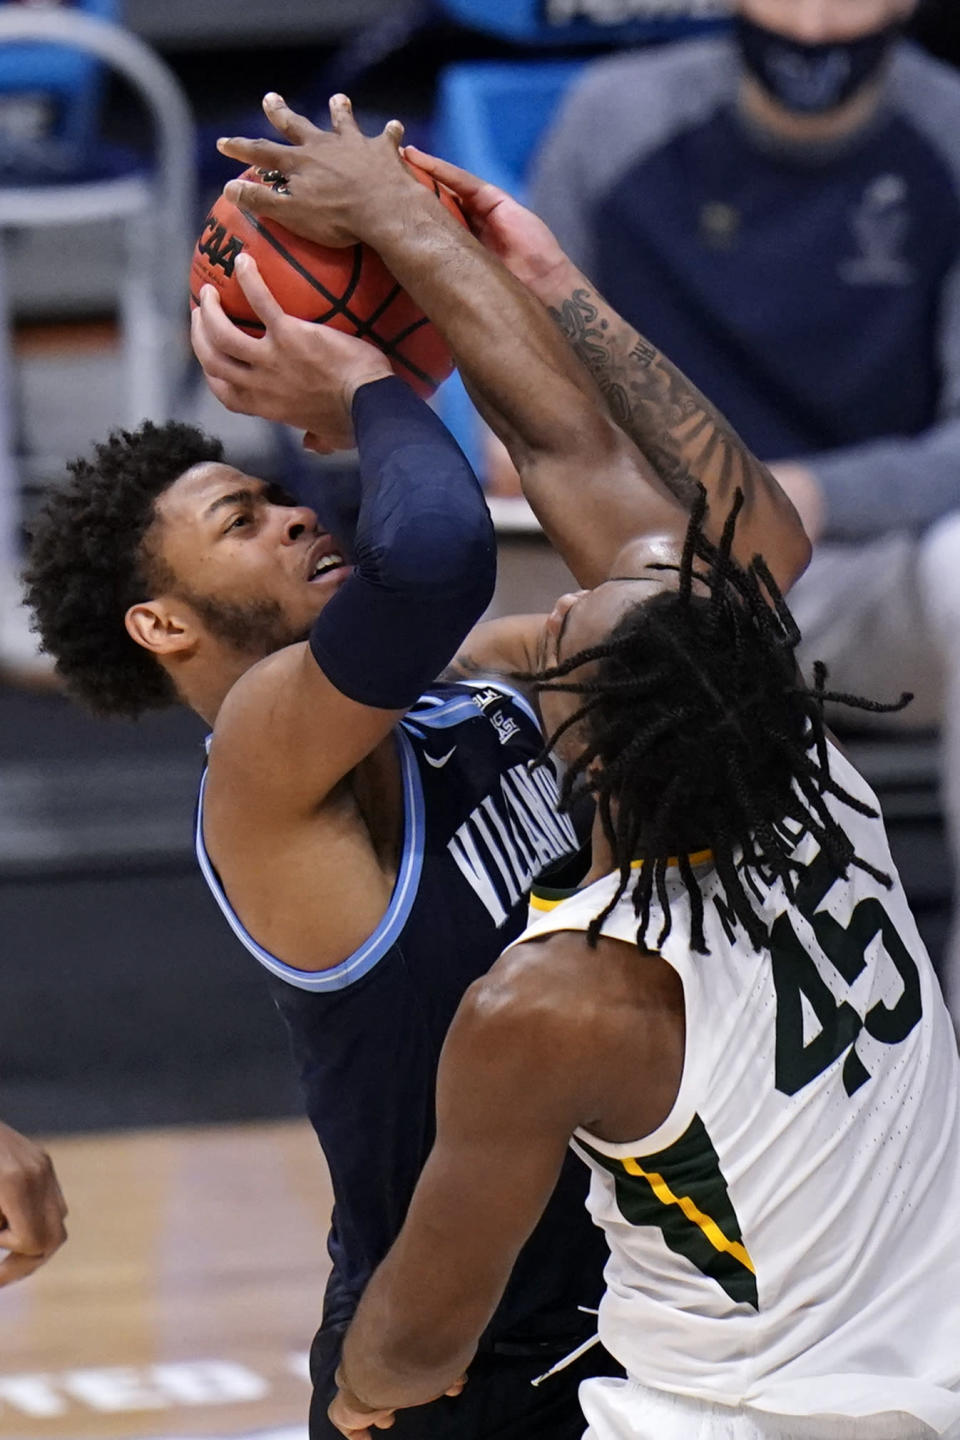 Baylor guard Davion Mitchell (45) blocks a Villanova guard Justin Moore (5) shot in the second half of a Sweet 16 game in the NCAA men's college basketball tournament at Hinkle Fieldhouse in Indianapolis, Saturday, March 27, 2021. (AP Photo/AJ Mast)